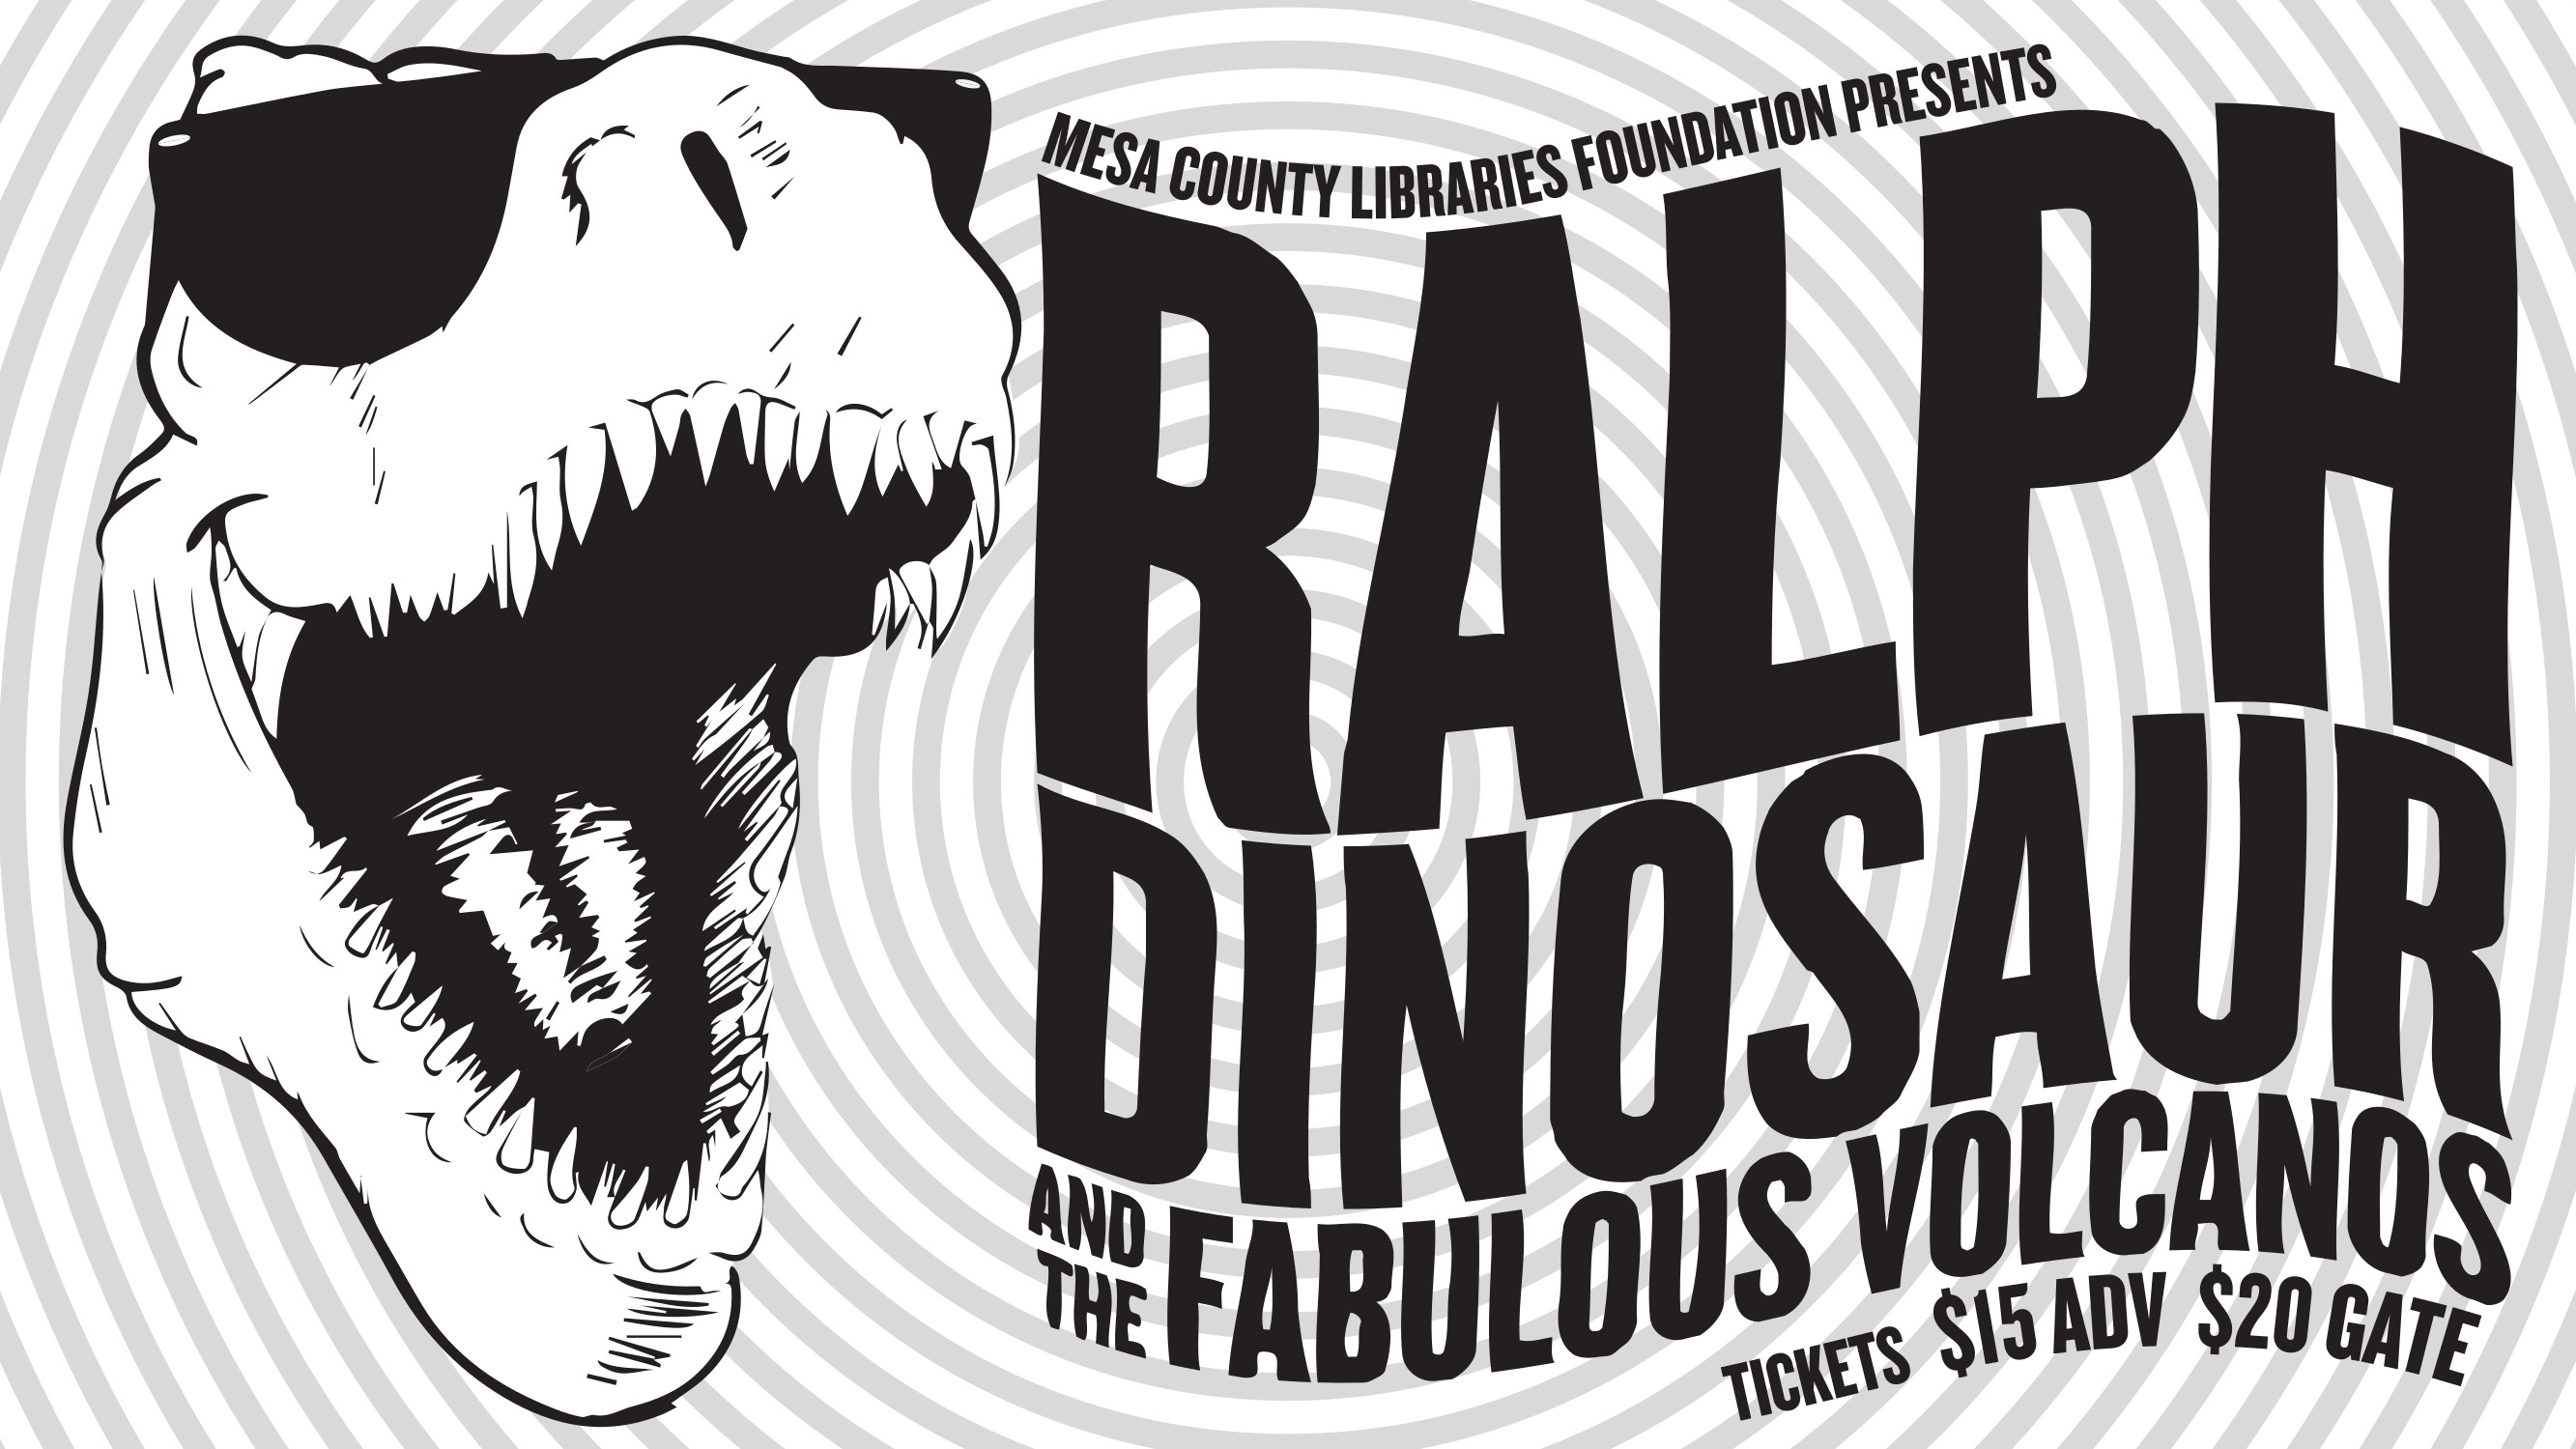 the mesa county libraries foundation will present ralph dinosaur and the fabulous volcanos in concert the evening of saturday june 30 2018